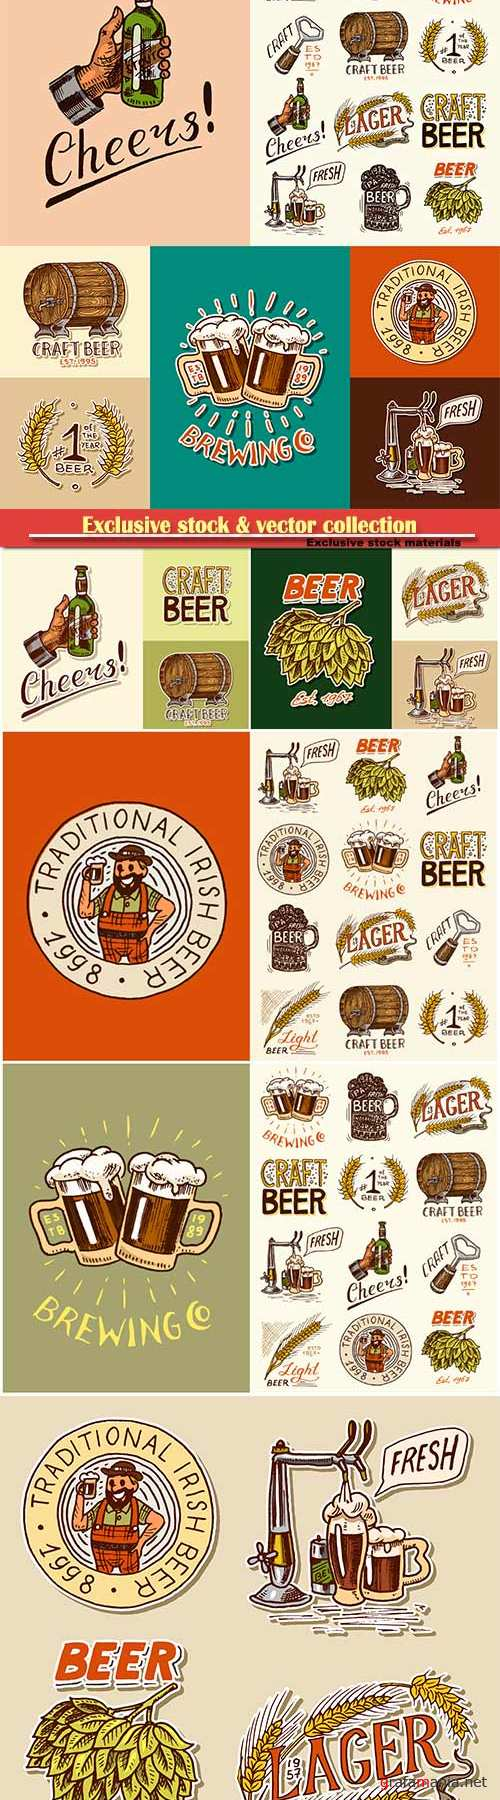 Beer vector stickers and labels